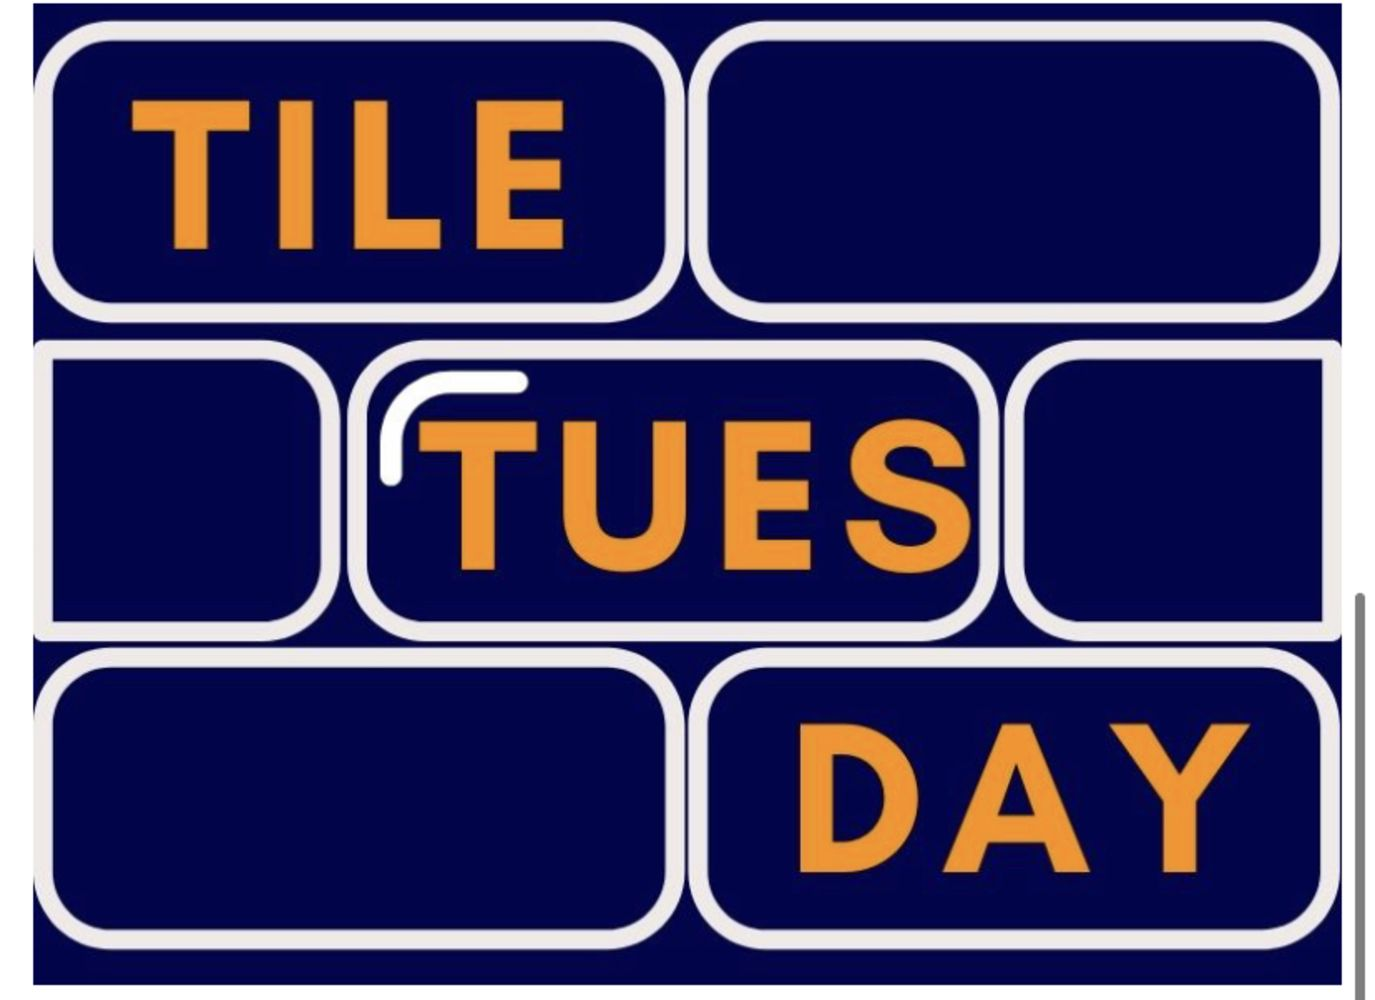 """No Reserve - Tile Tuesday - """"over £80k worth of tiles – Sourced from Johnsons Tiles"""" - 16th March"""